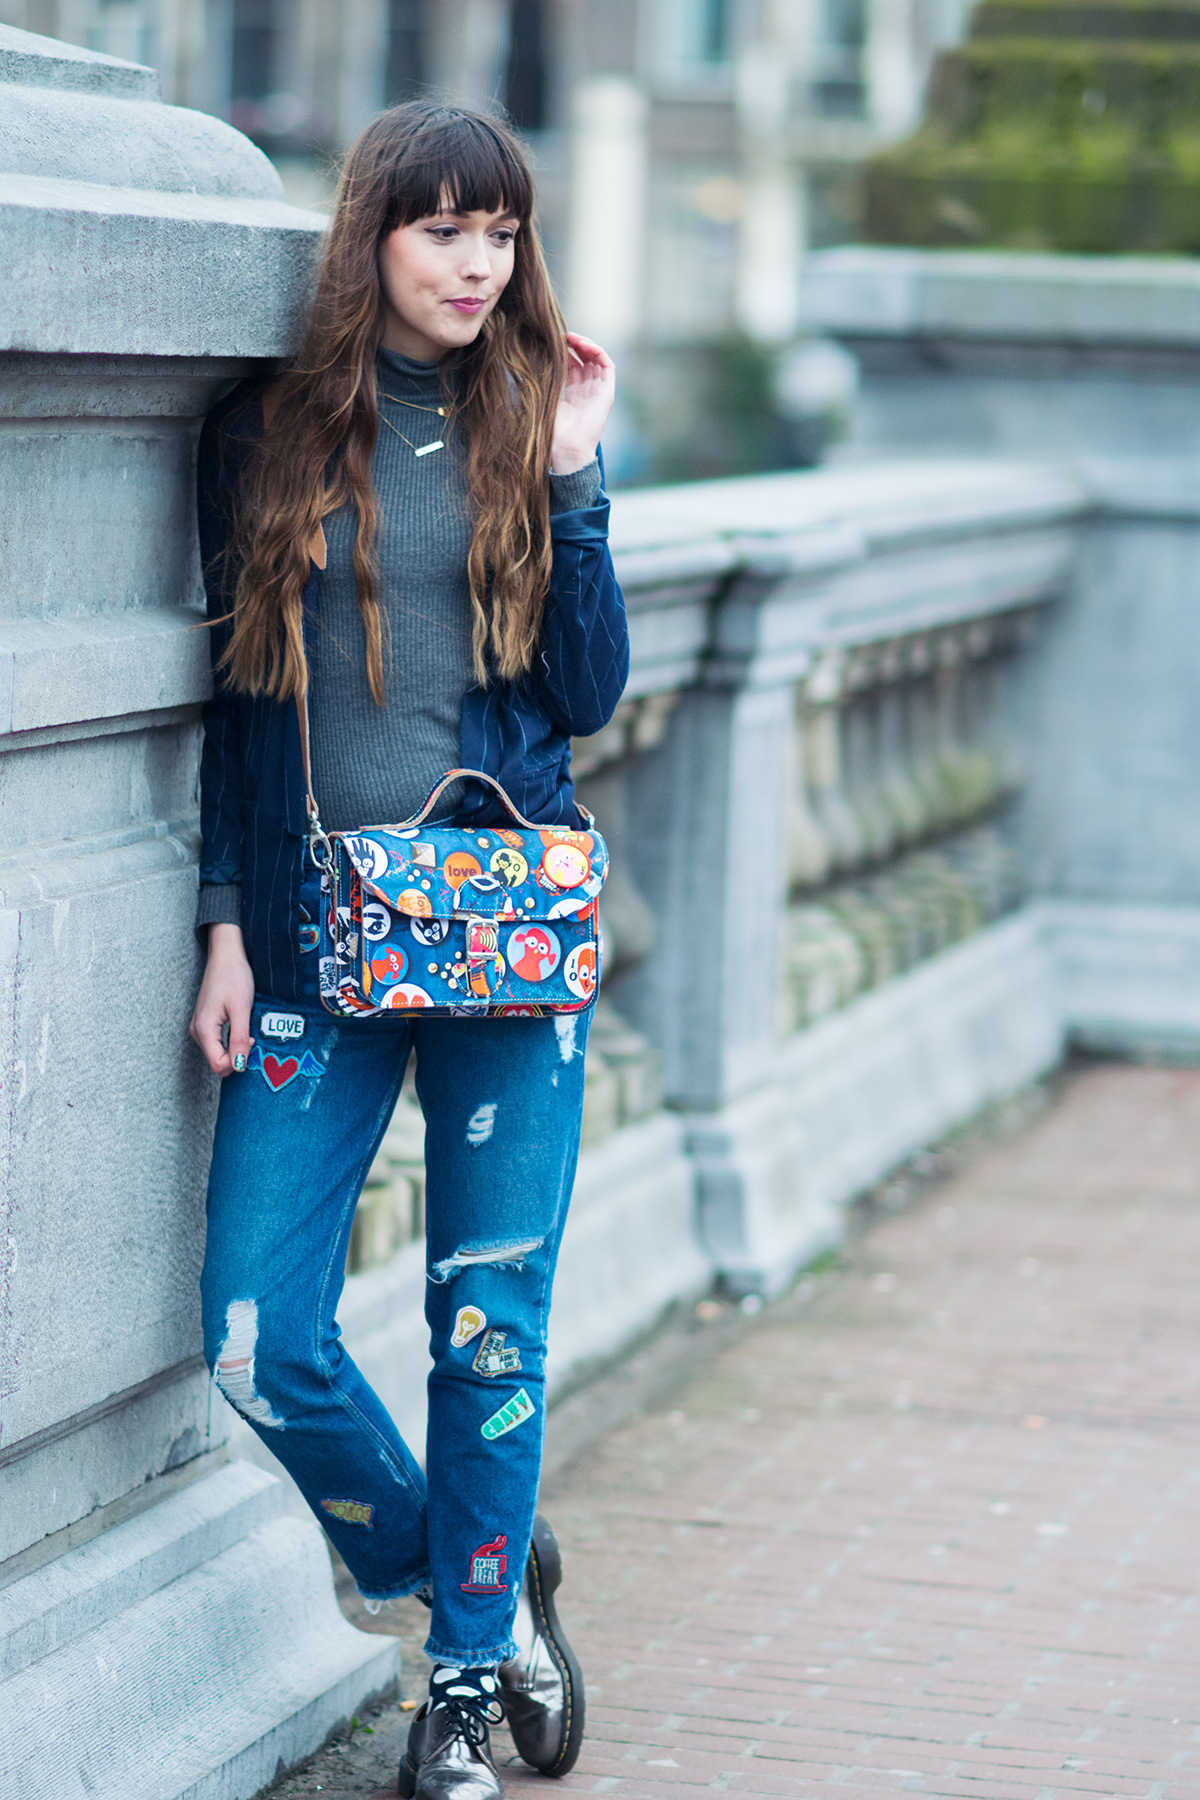 old-school-bags-bas-kosters-patchwork-trend-2